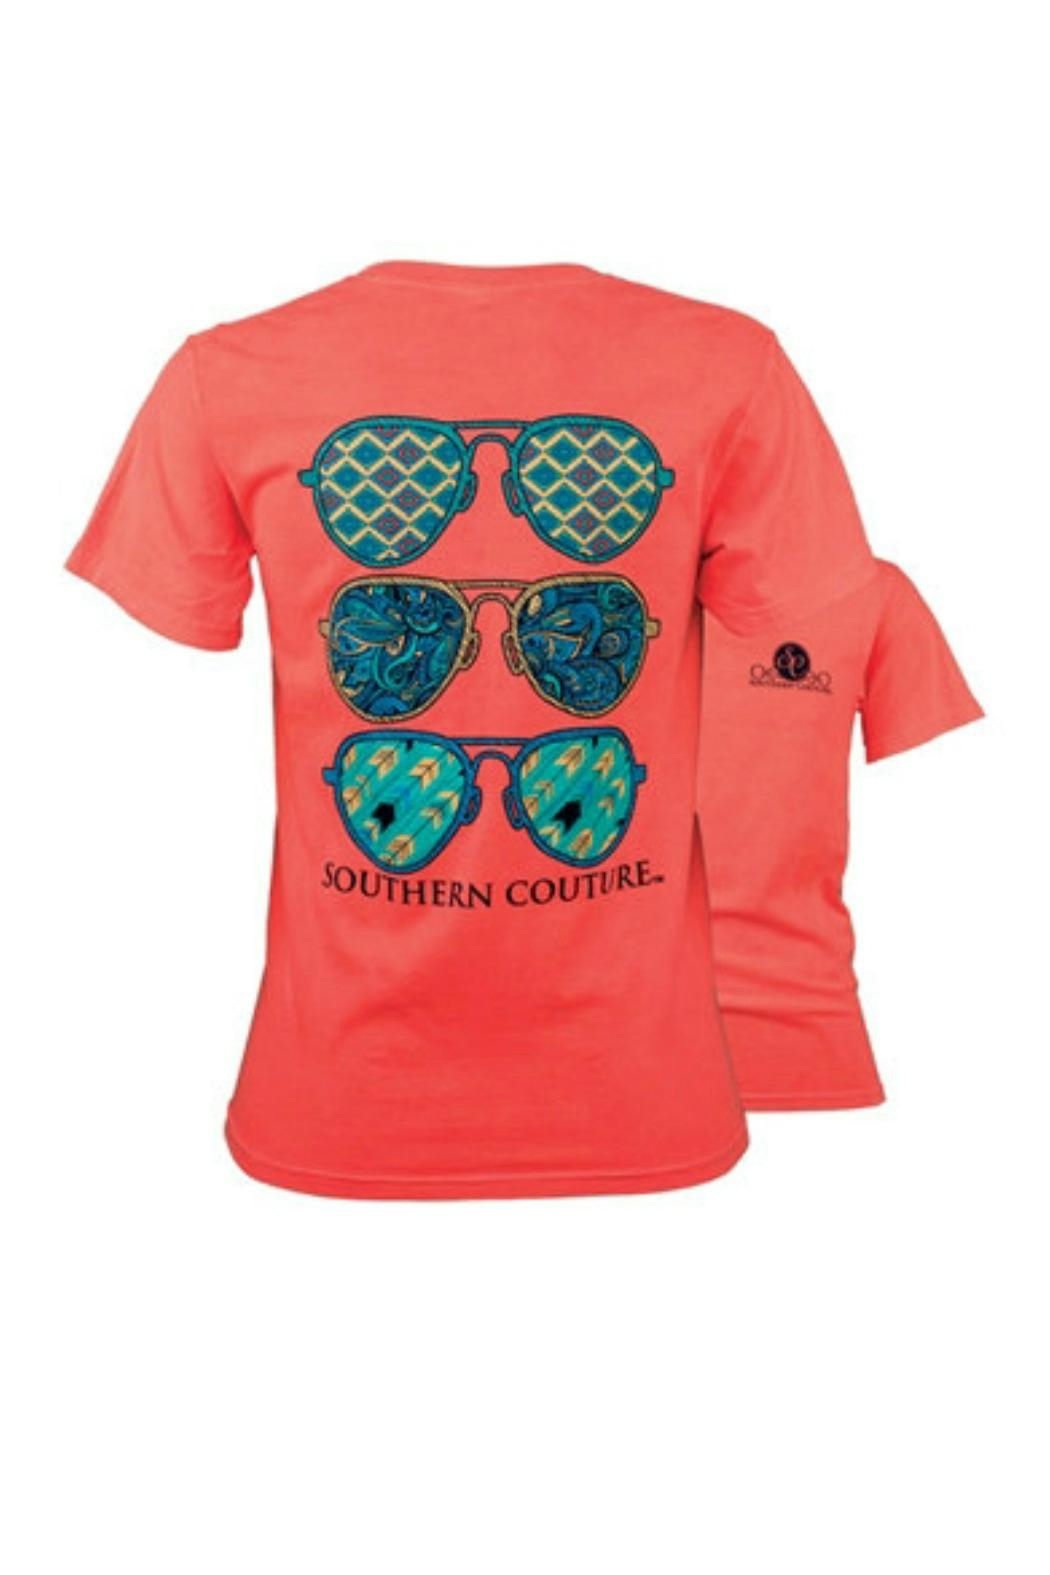 Southern Couture Preppy-Aviator-Sunglasses Youth Tee-Shirt - Main Image